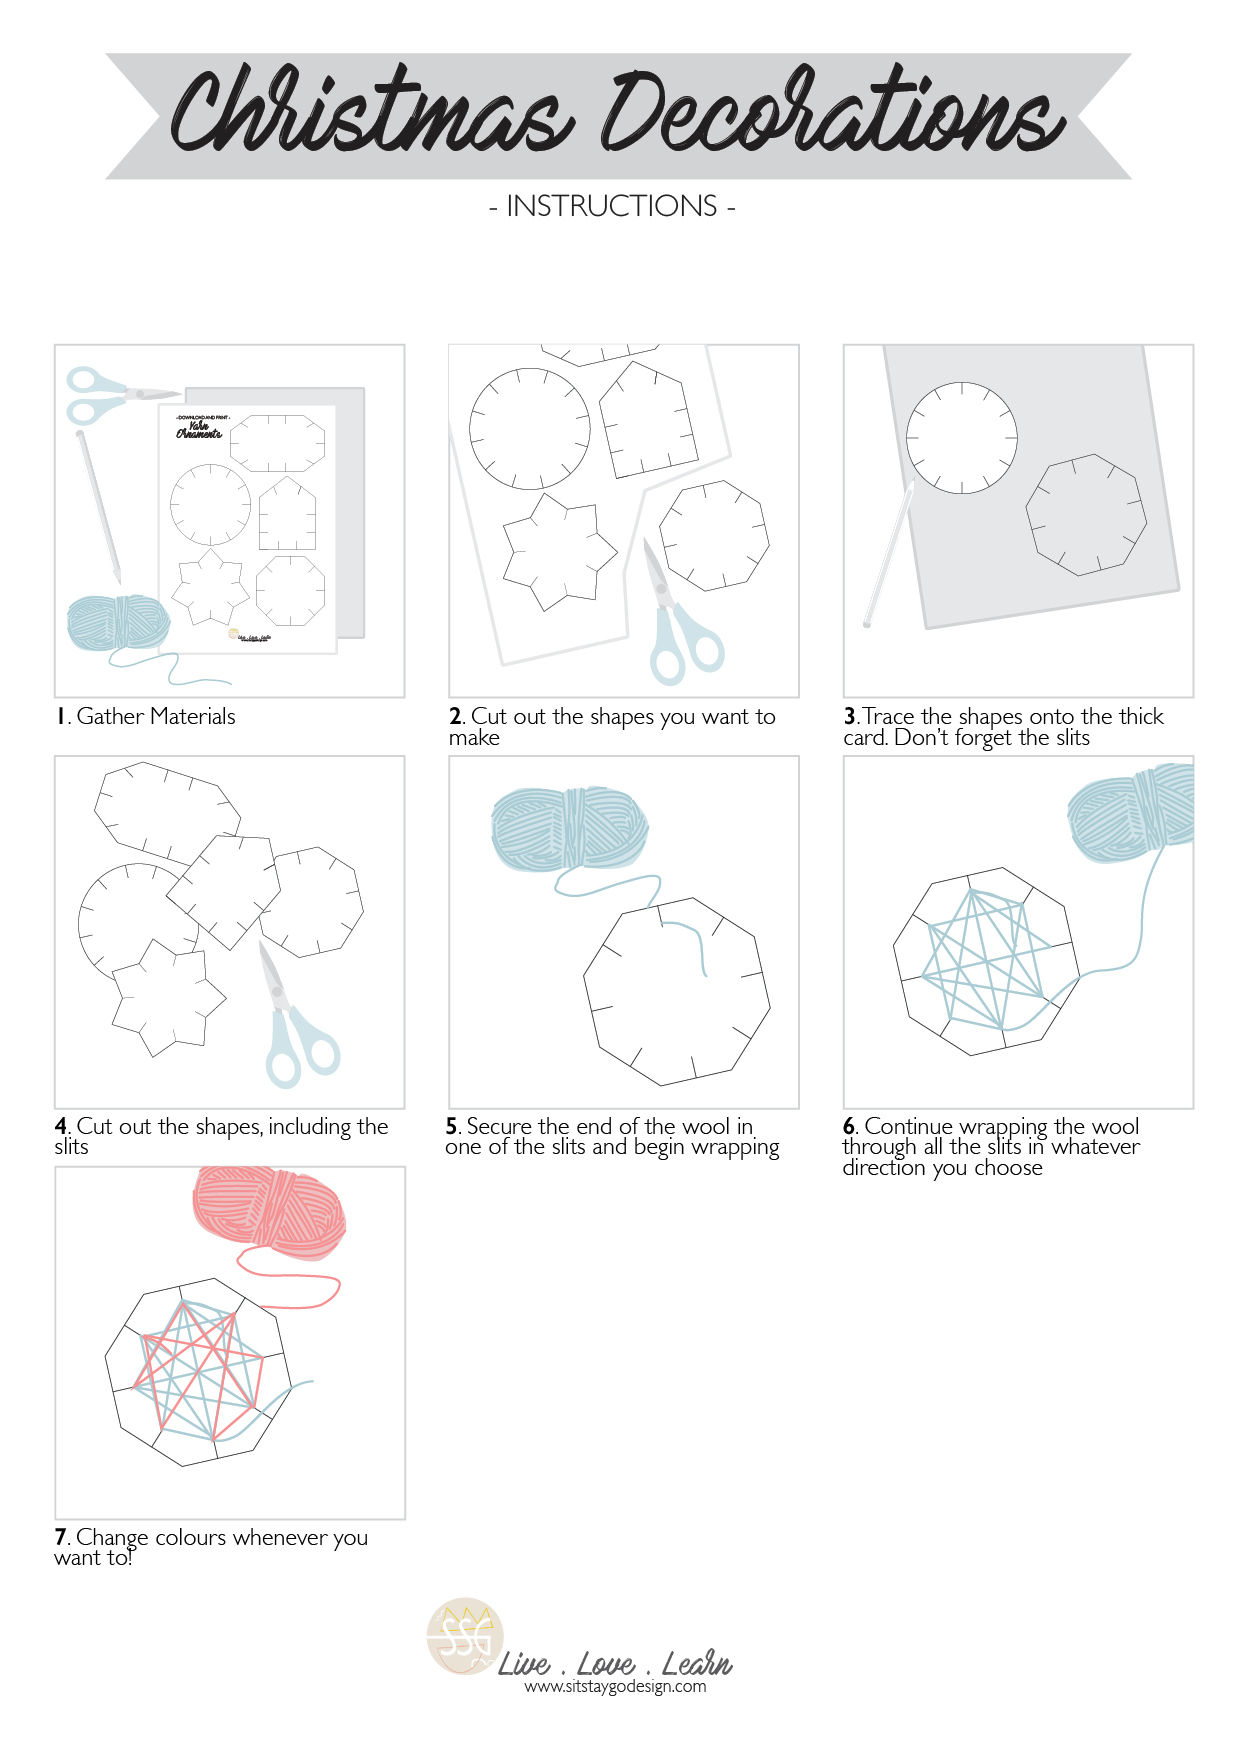 yarn-decorations_instructions